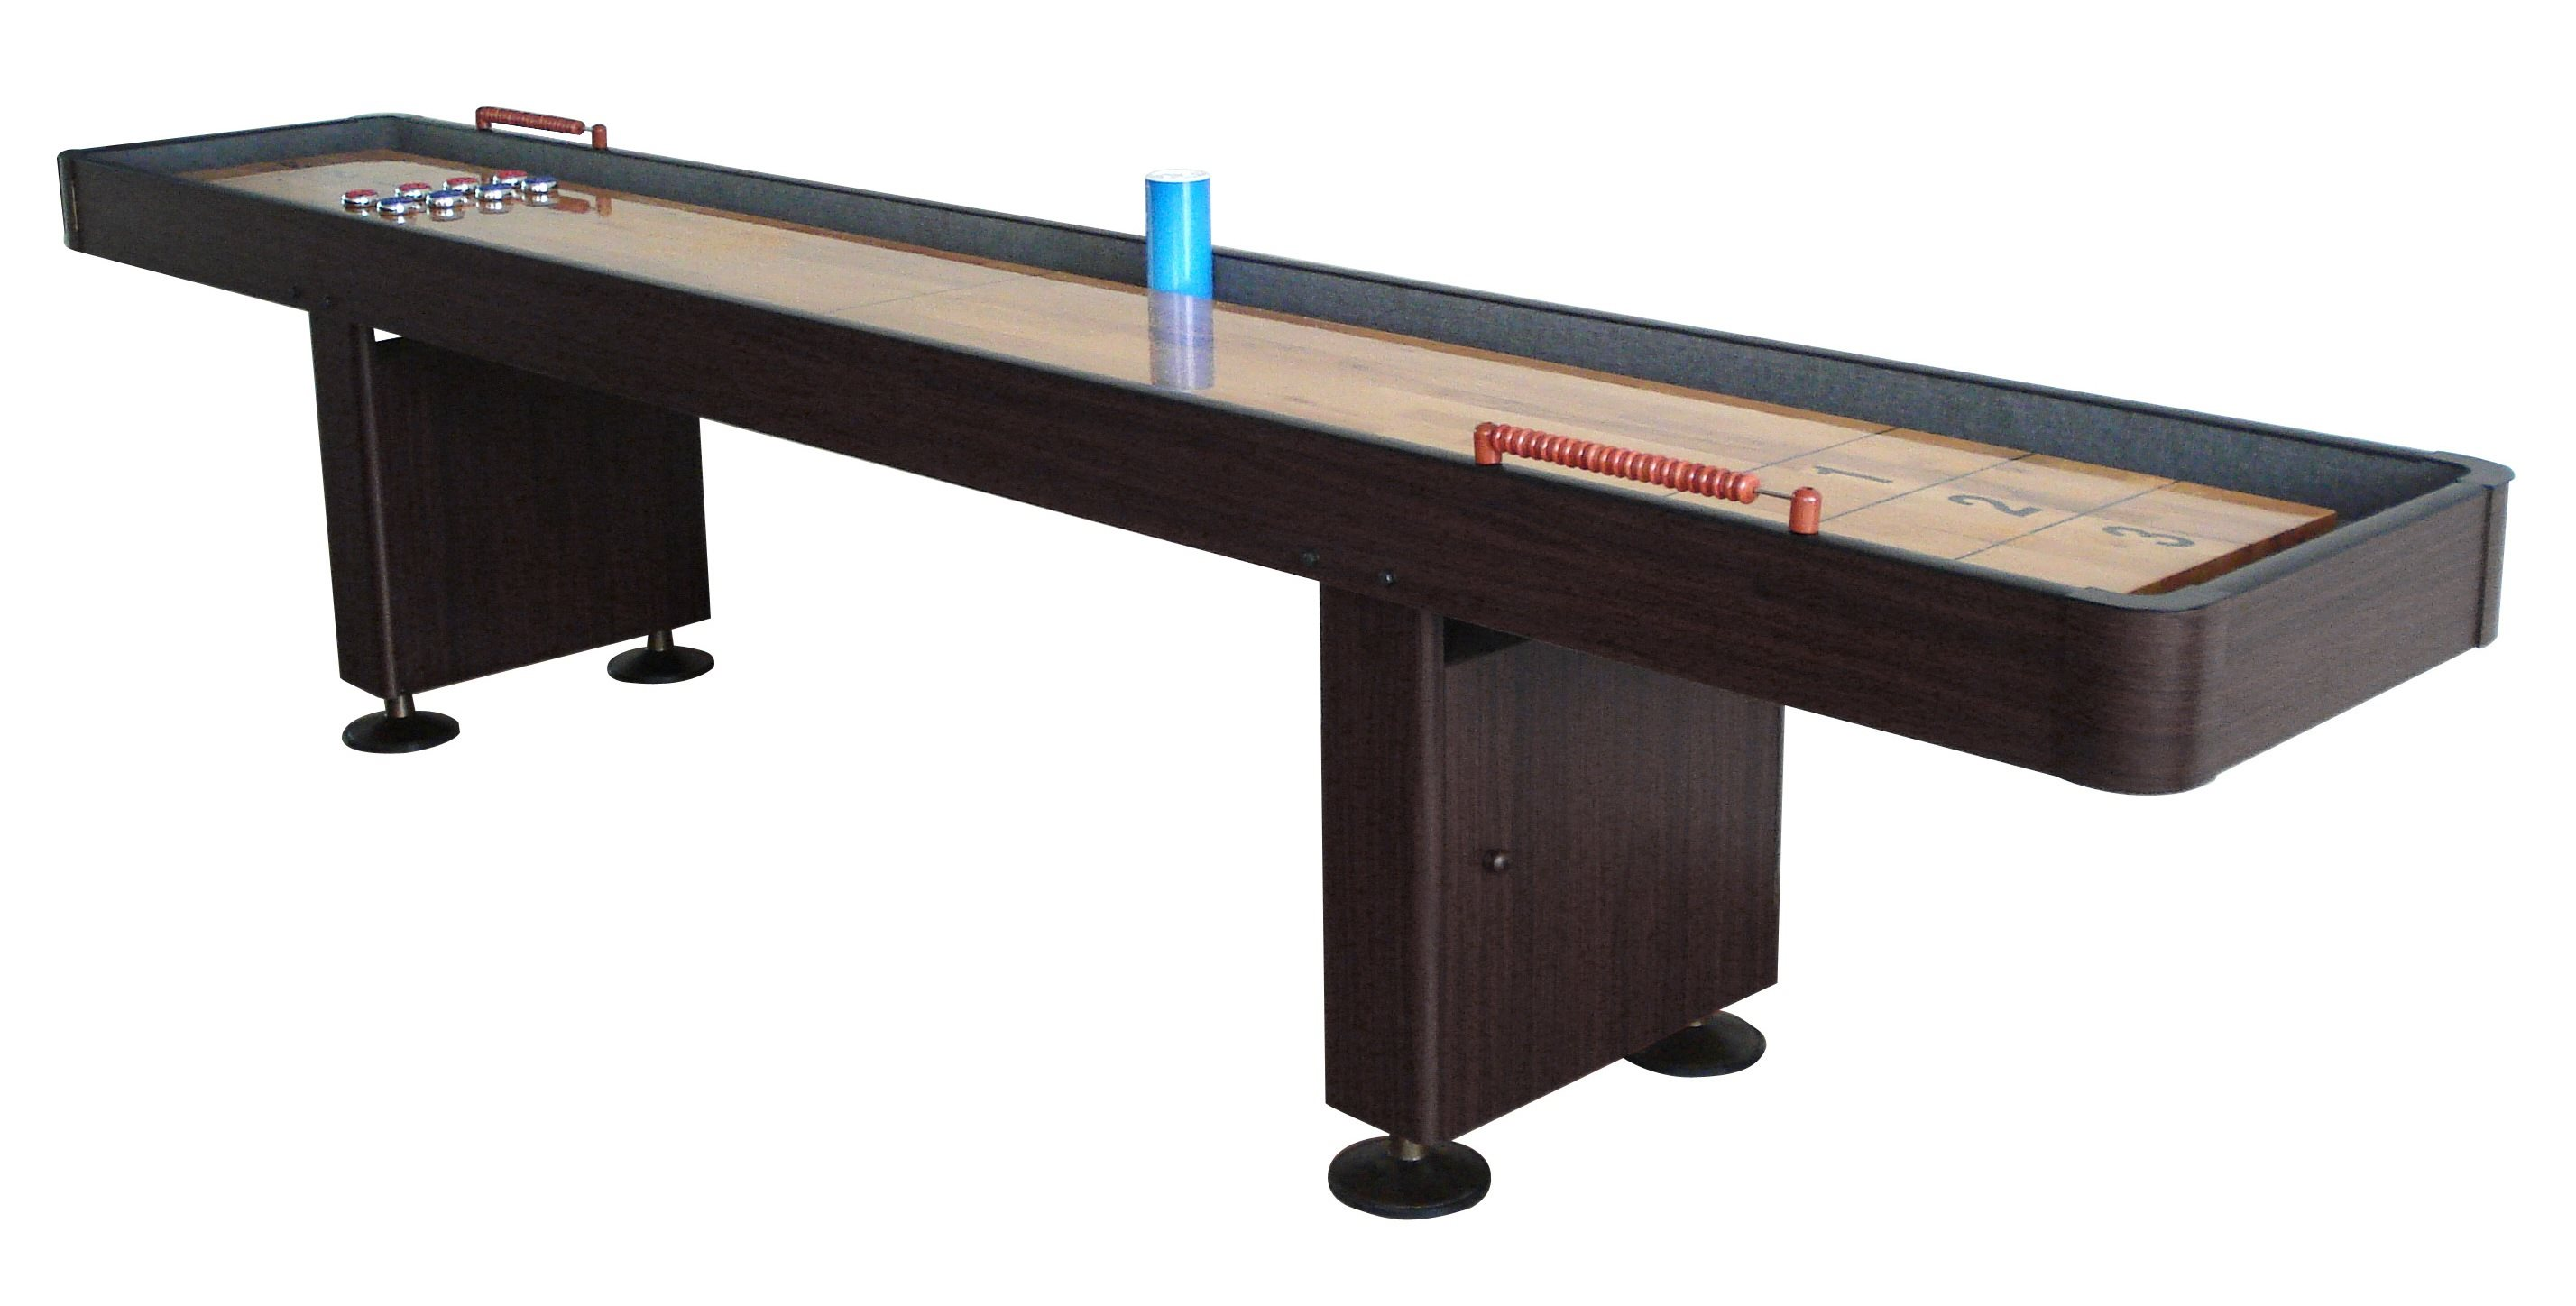 Carmelli Challenger 9 Shuffleboard Table - Walnut Finish